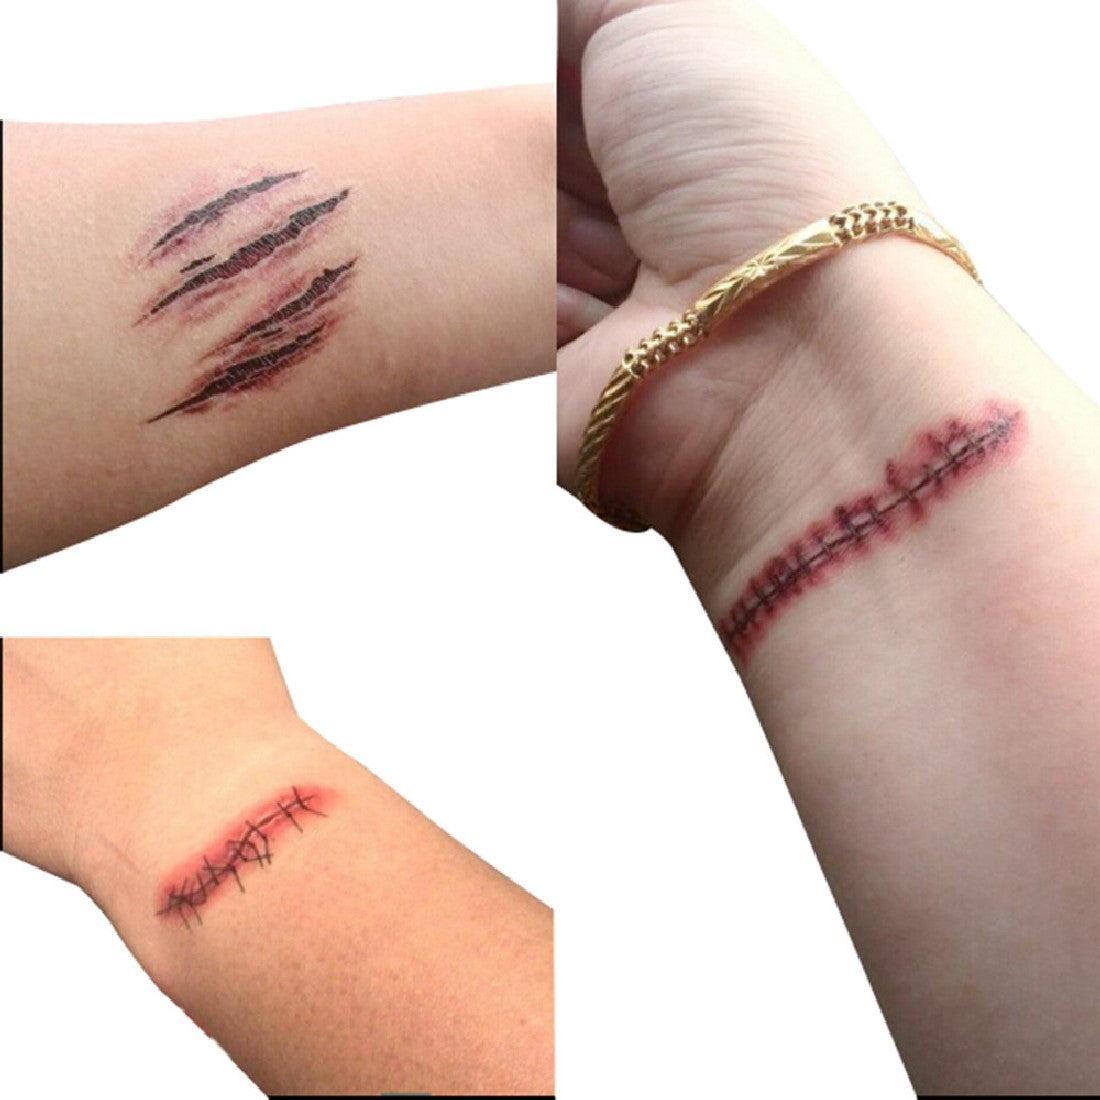 Zombie Scars Halloween Tattoos With Fake Scab Bloody Makeup - halloween - 99fab.com